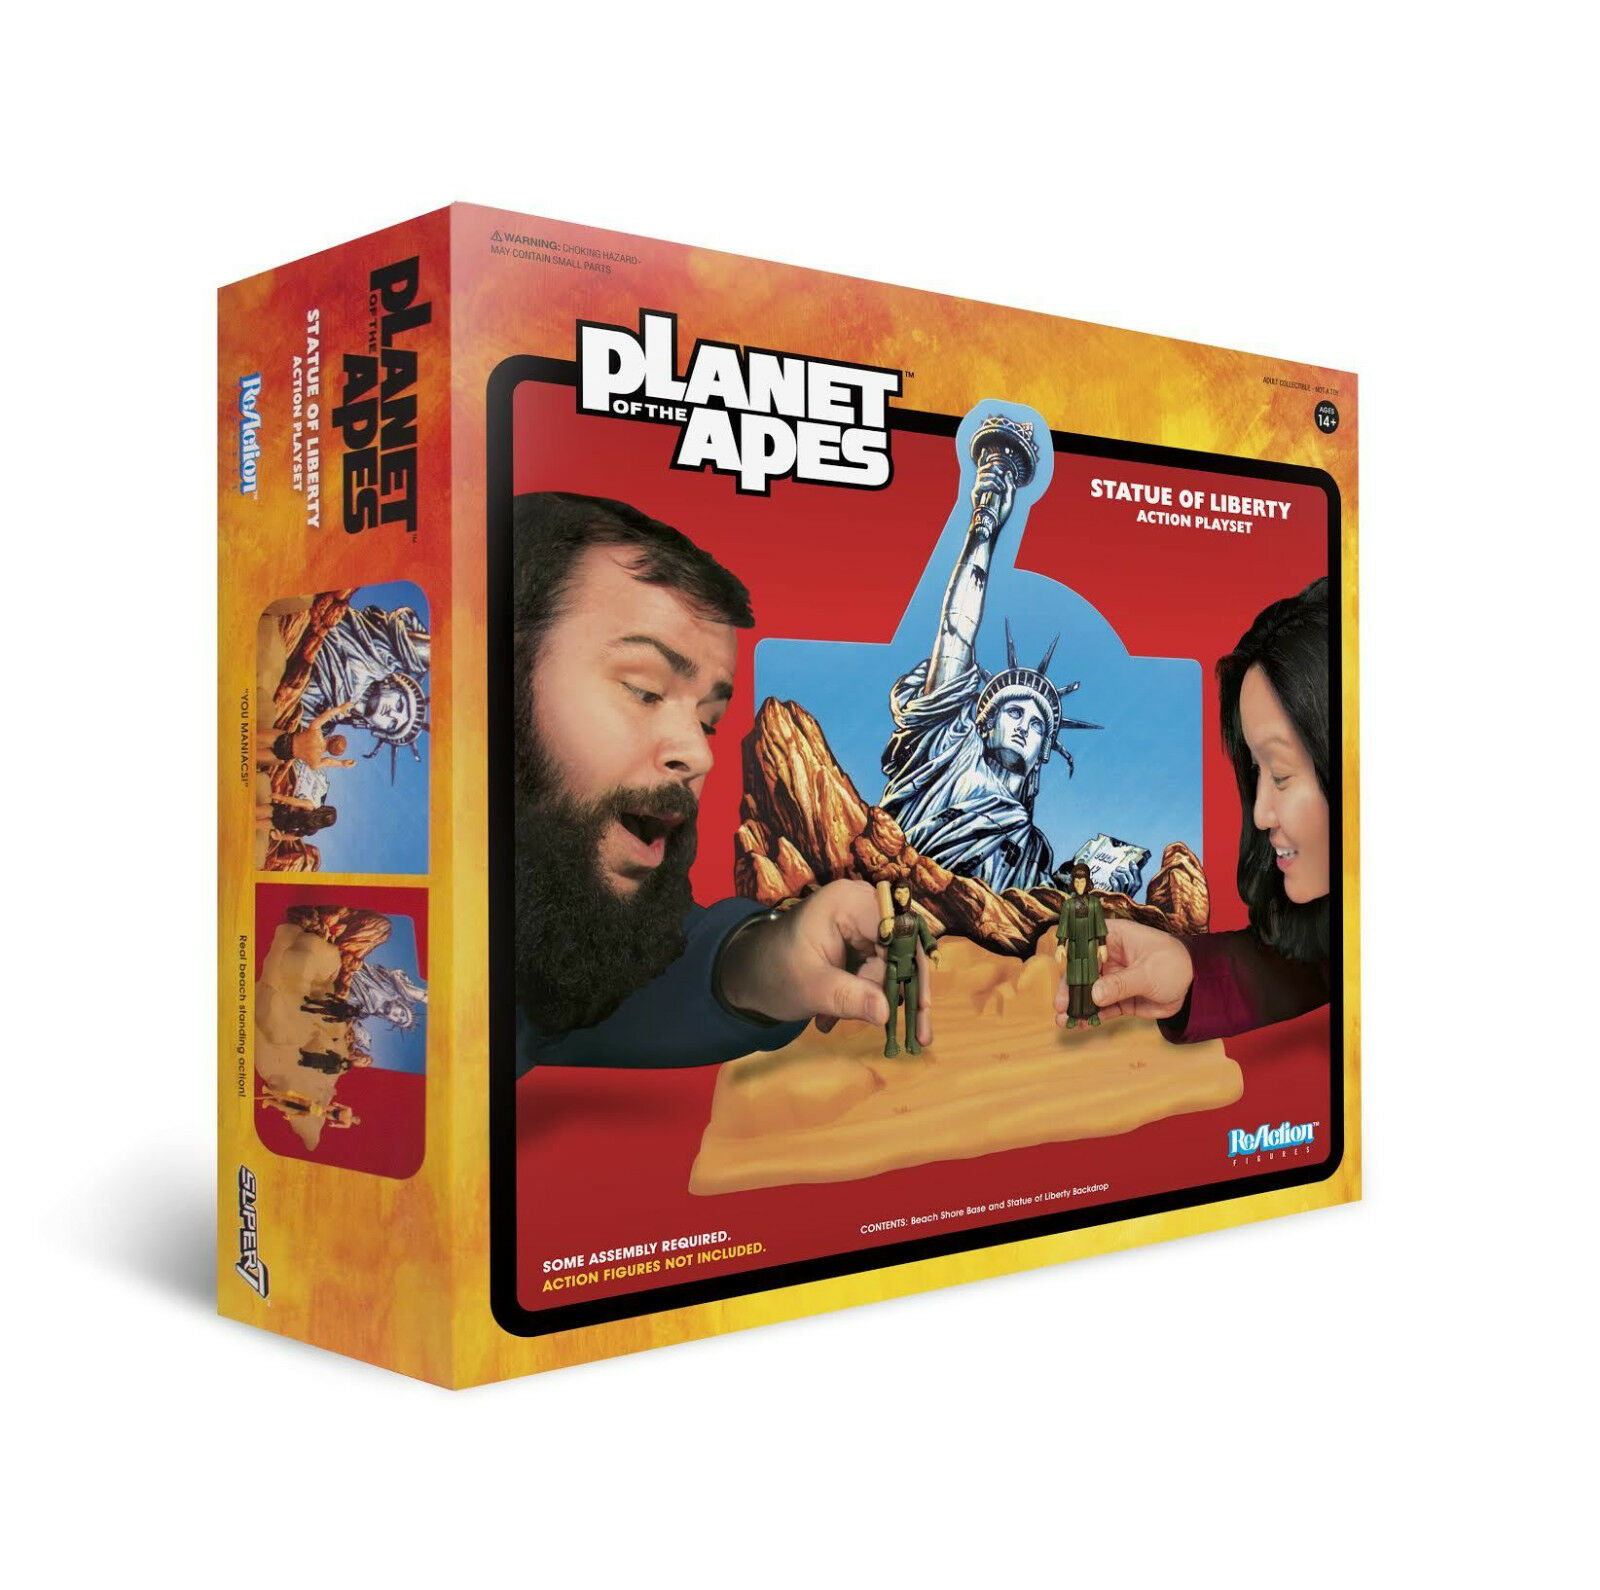 Super7 SDCC 2018 Exclusive ReAction Planet of The Apes Statue of Liberty Playset